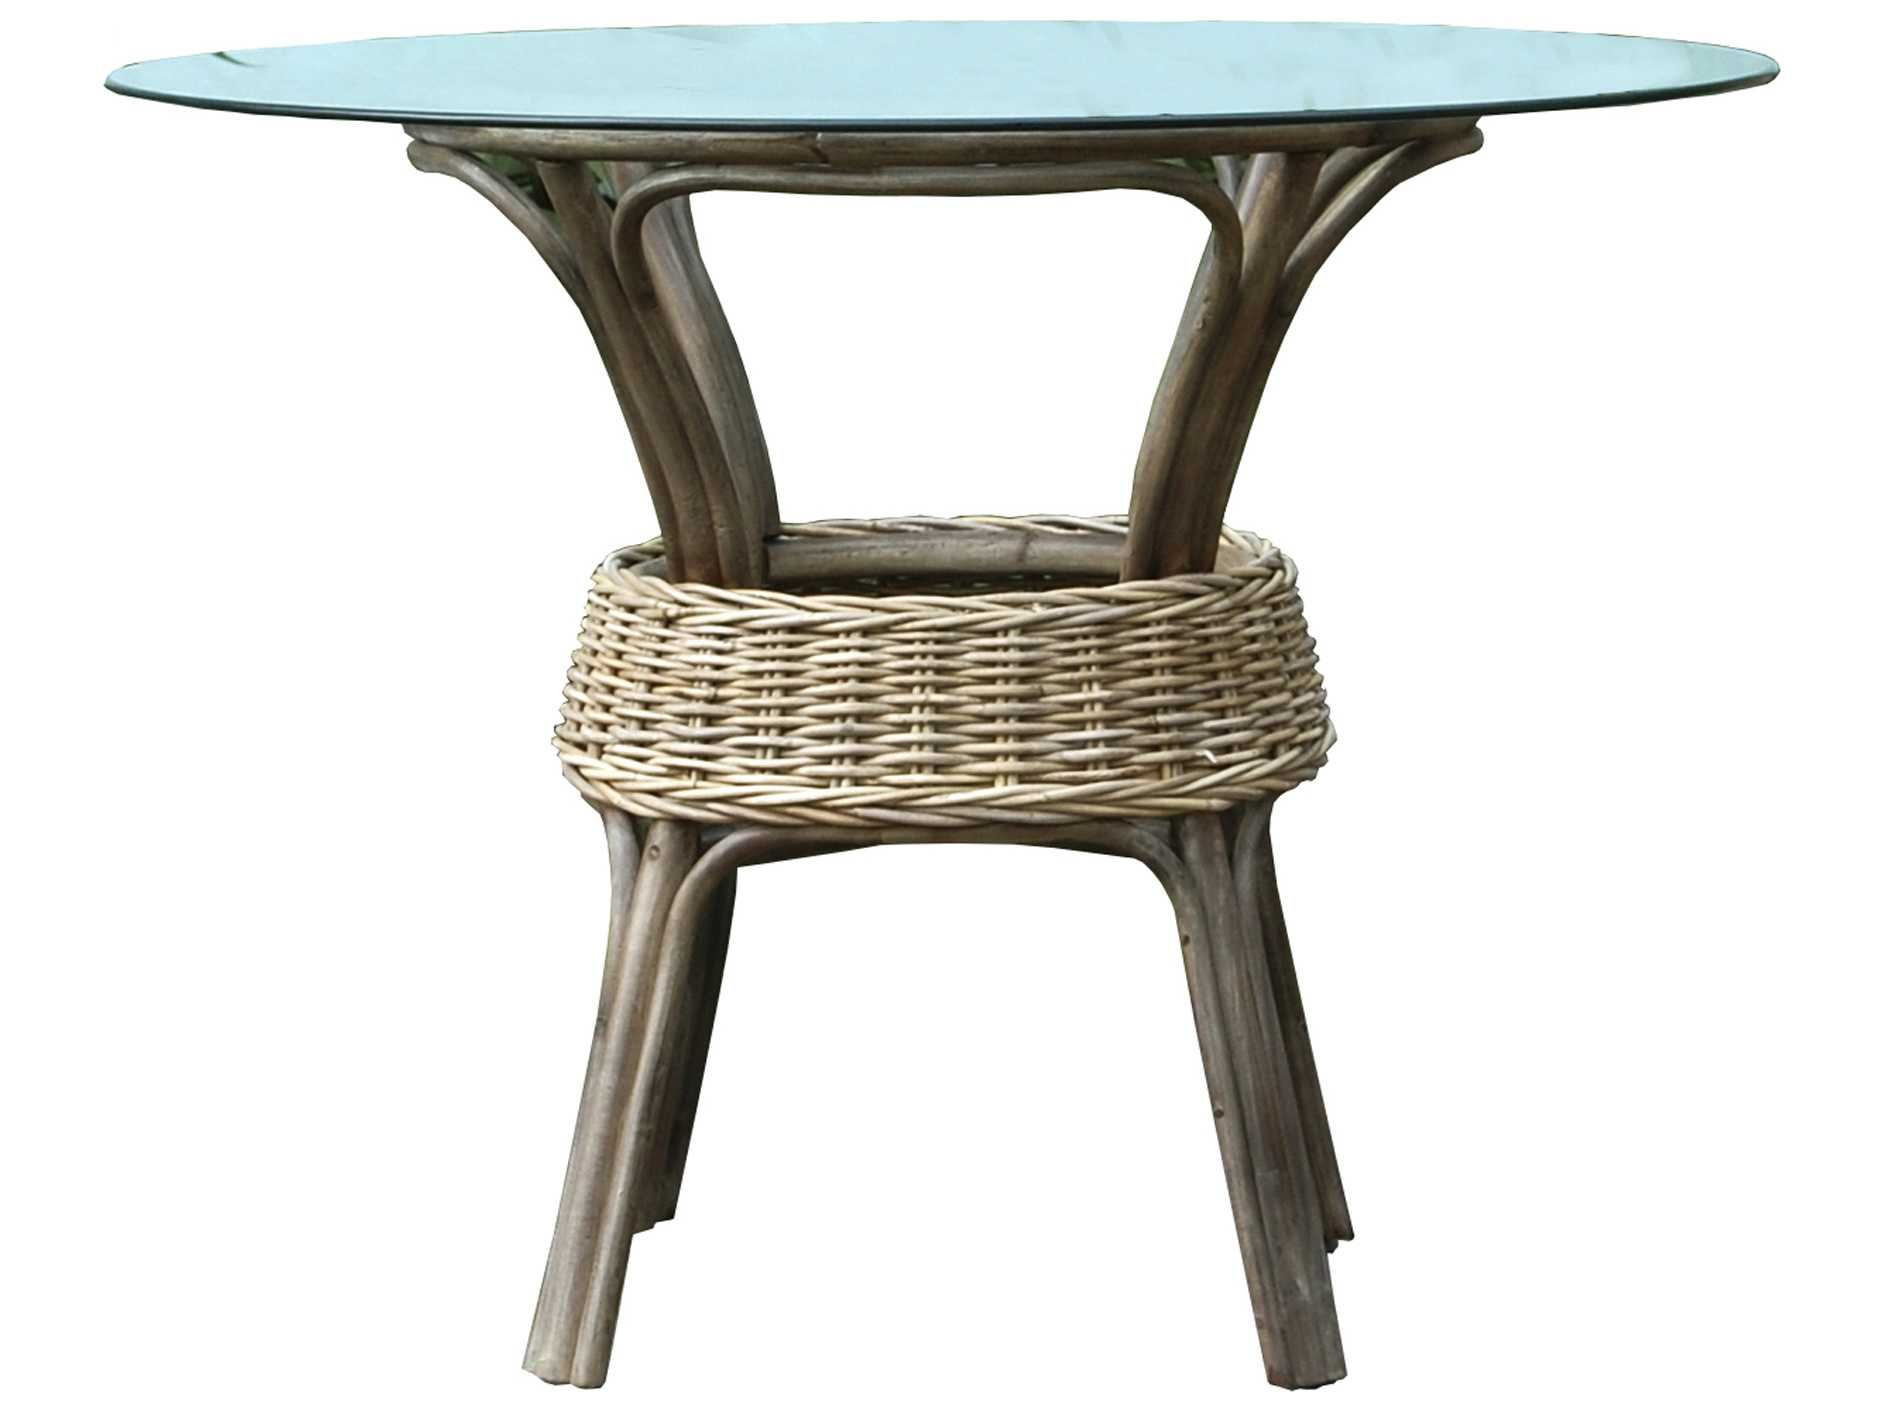 Panama Jack Exuma 48 Round Wicker Dining Table PJPJS3001KBUB